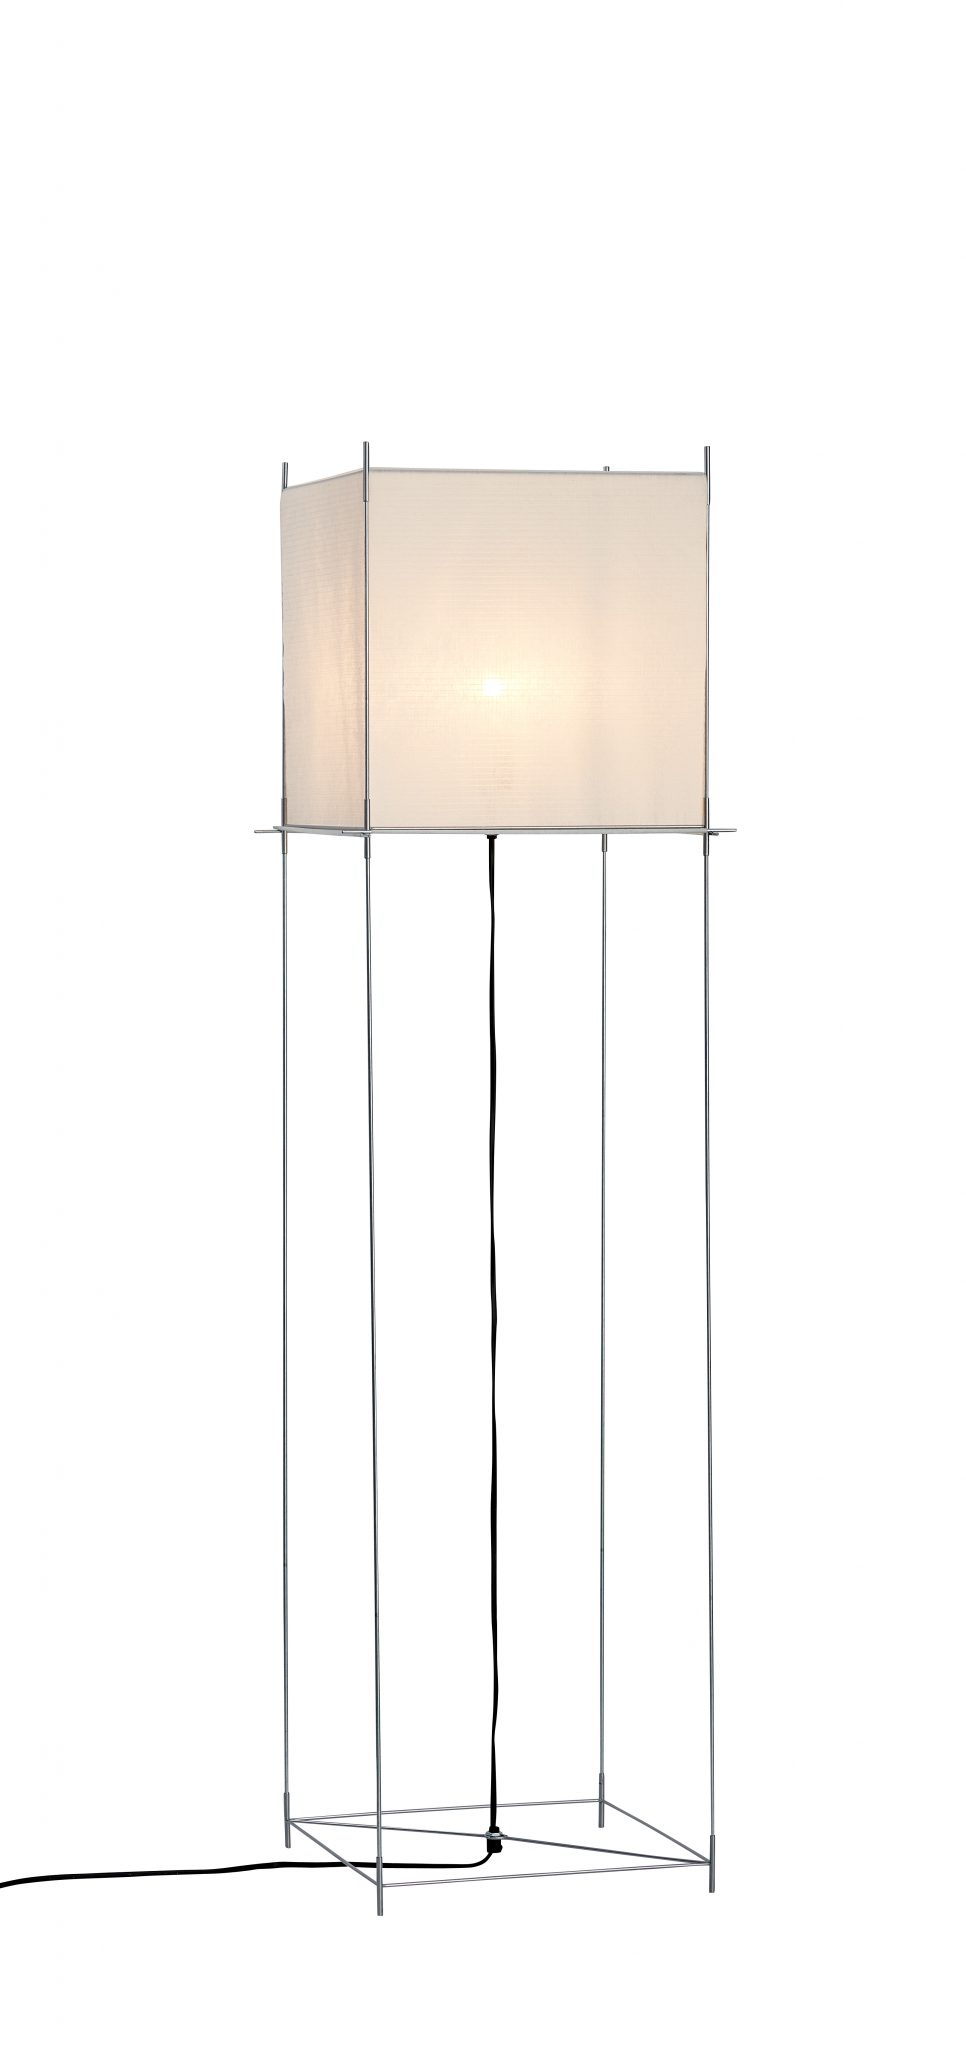 Design Lamp Bijenkorf Lotek Lamp Classic Design Benno Premsela Hollands Licht